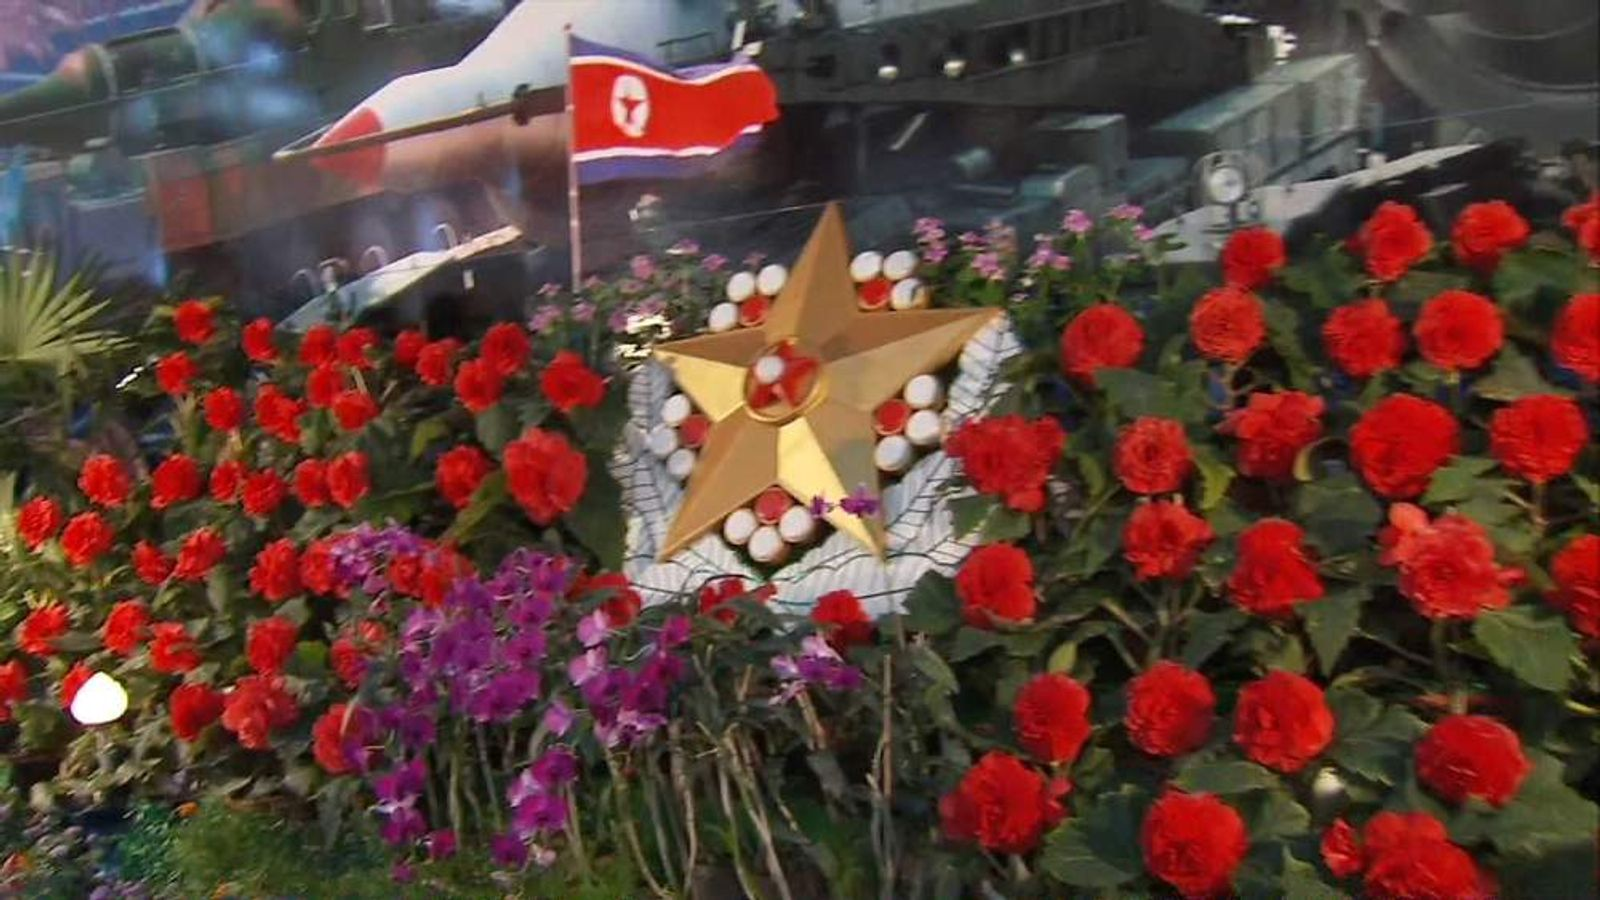 North Korea flower display for the Great Leader